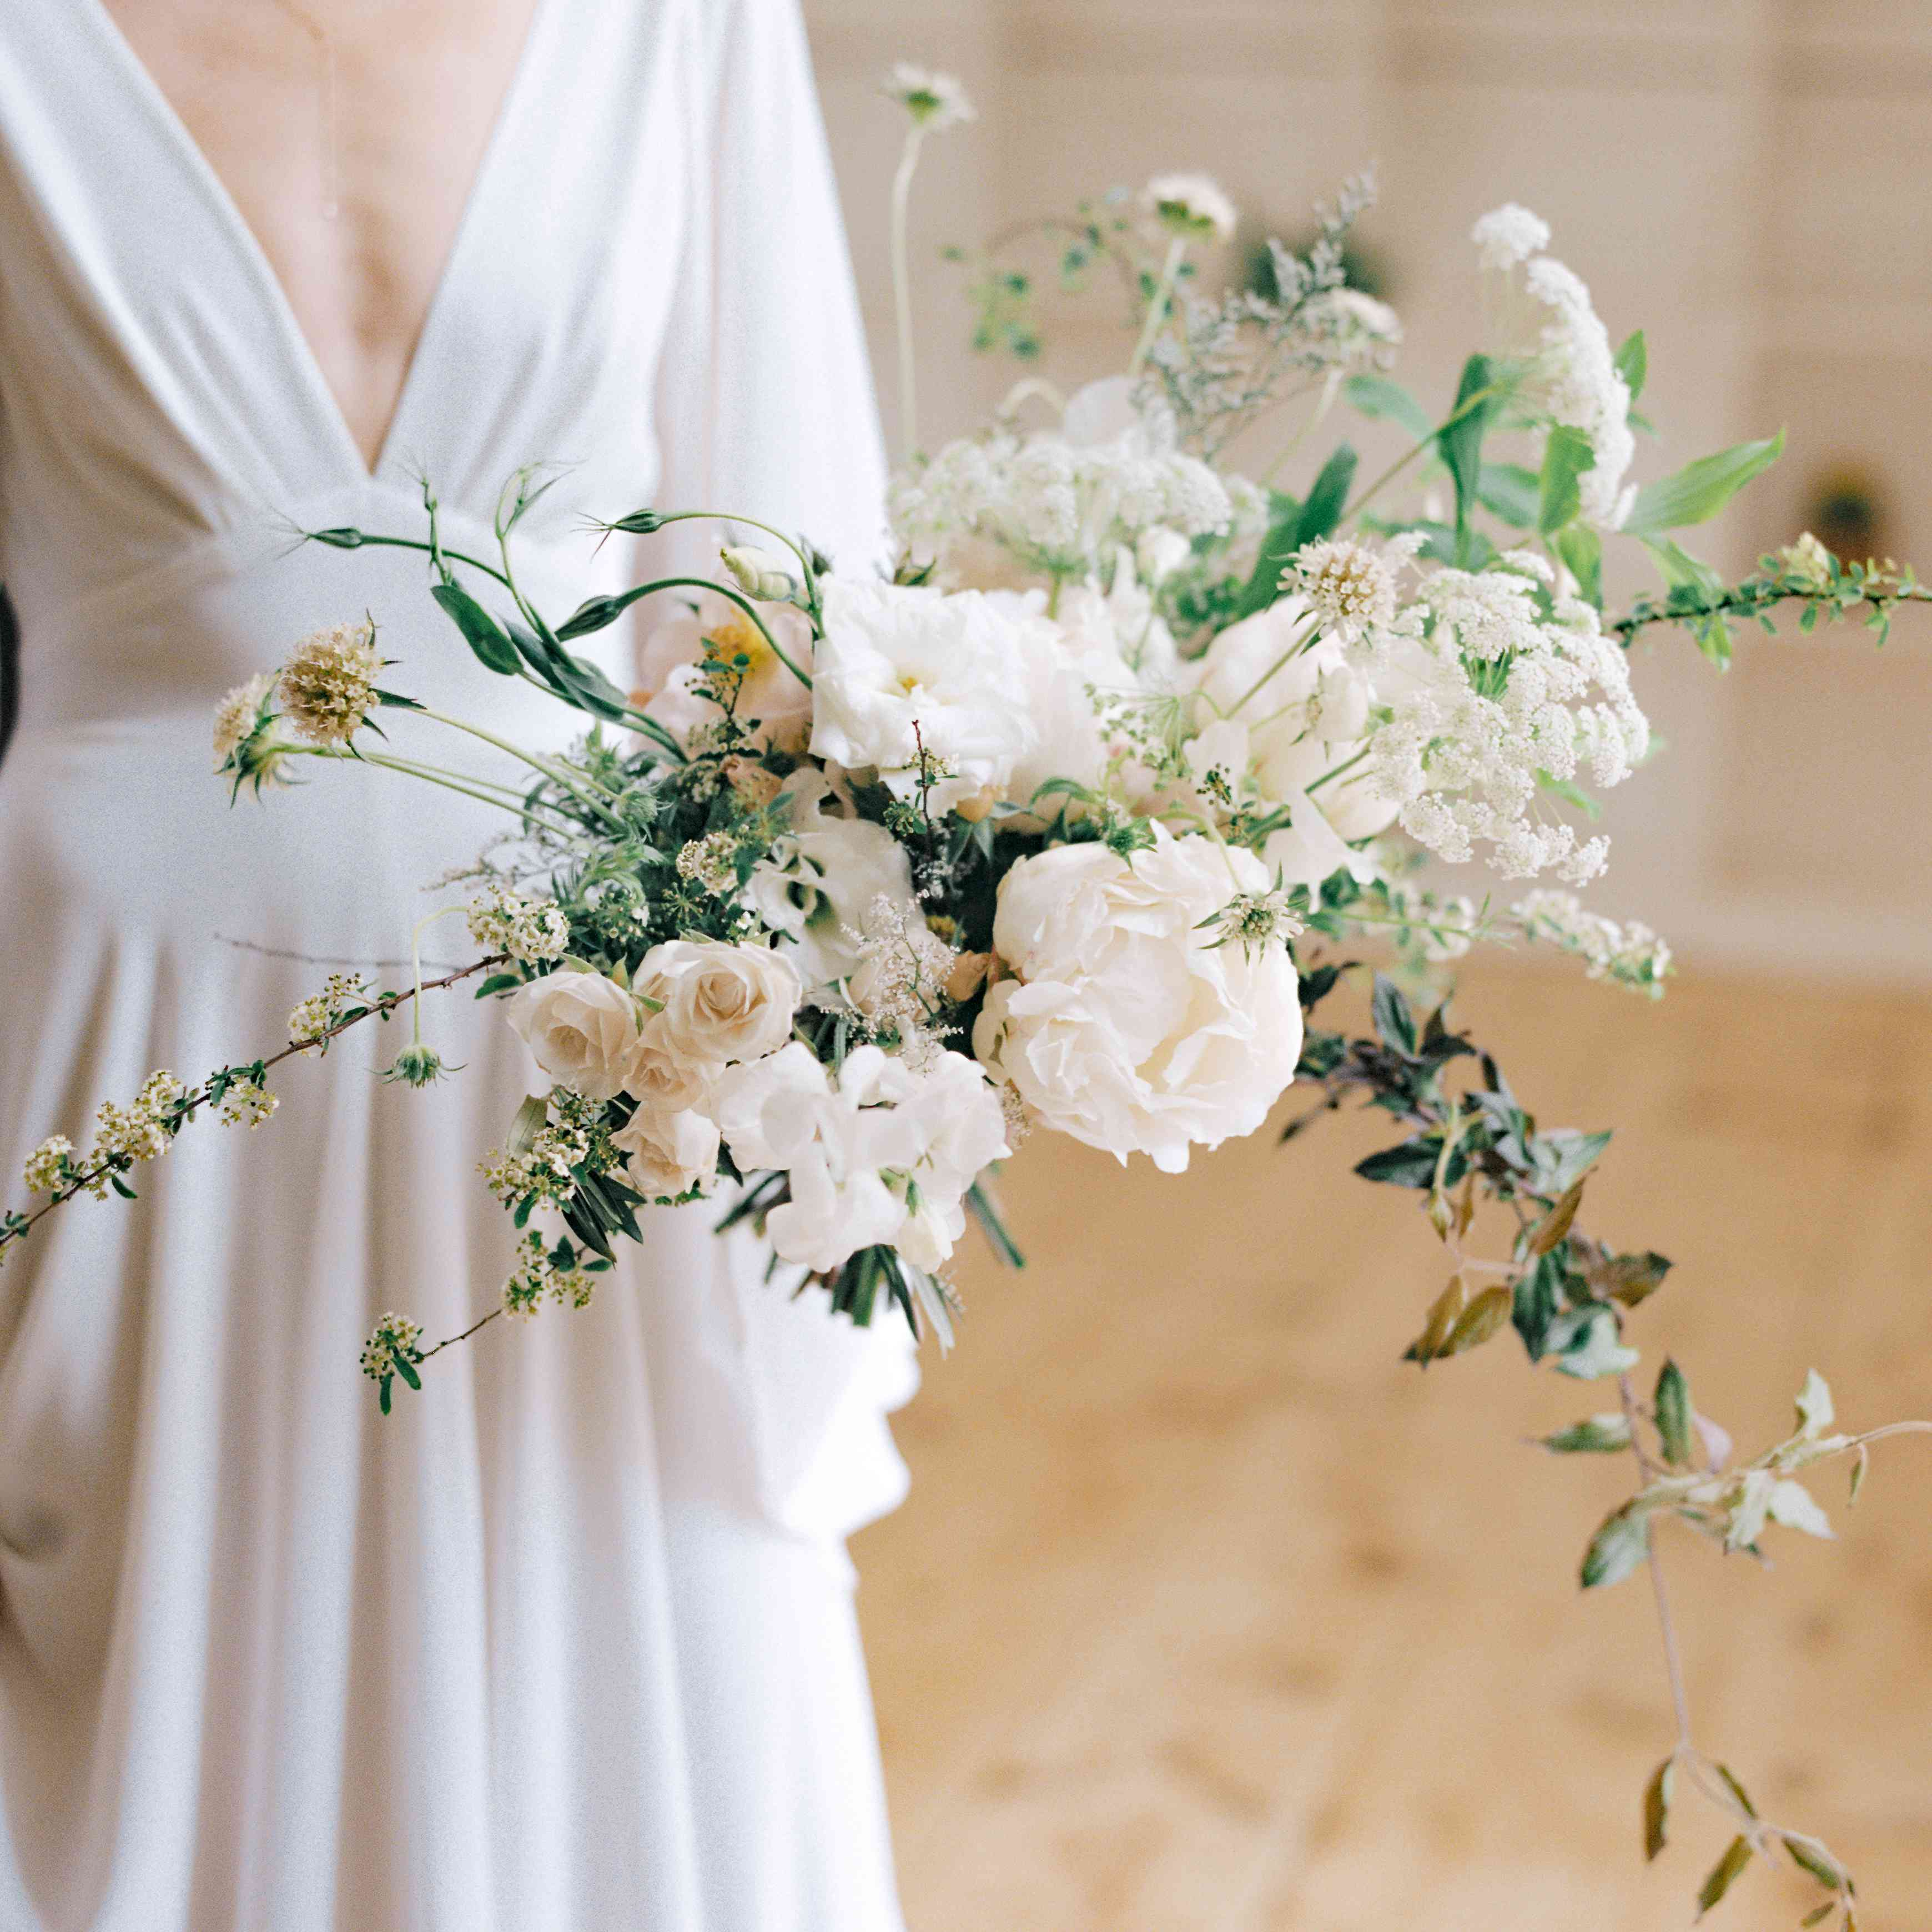 15 Gorgeous Winter Wedding Bouquets